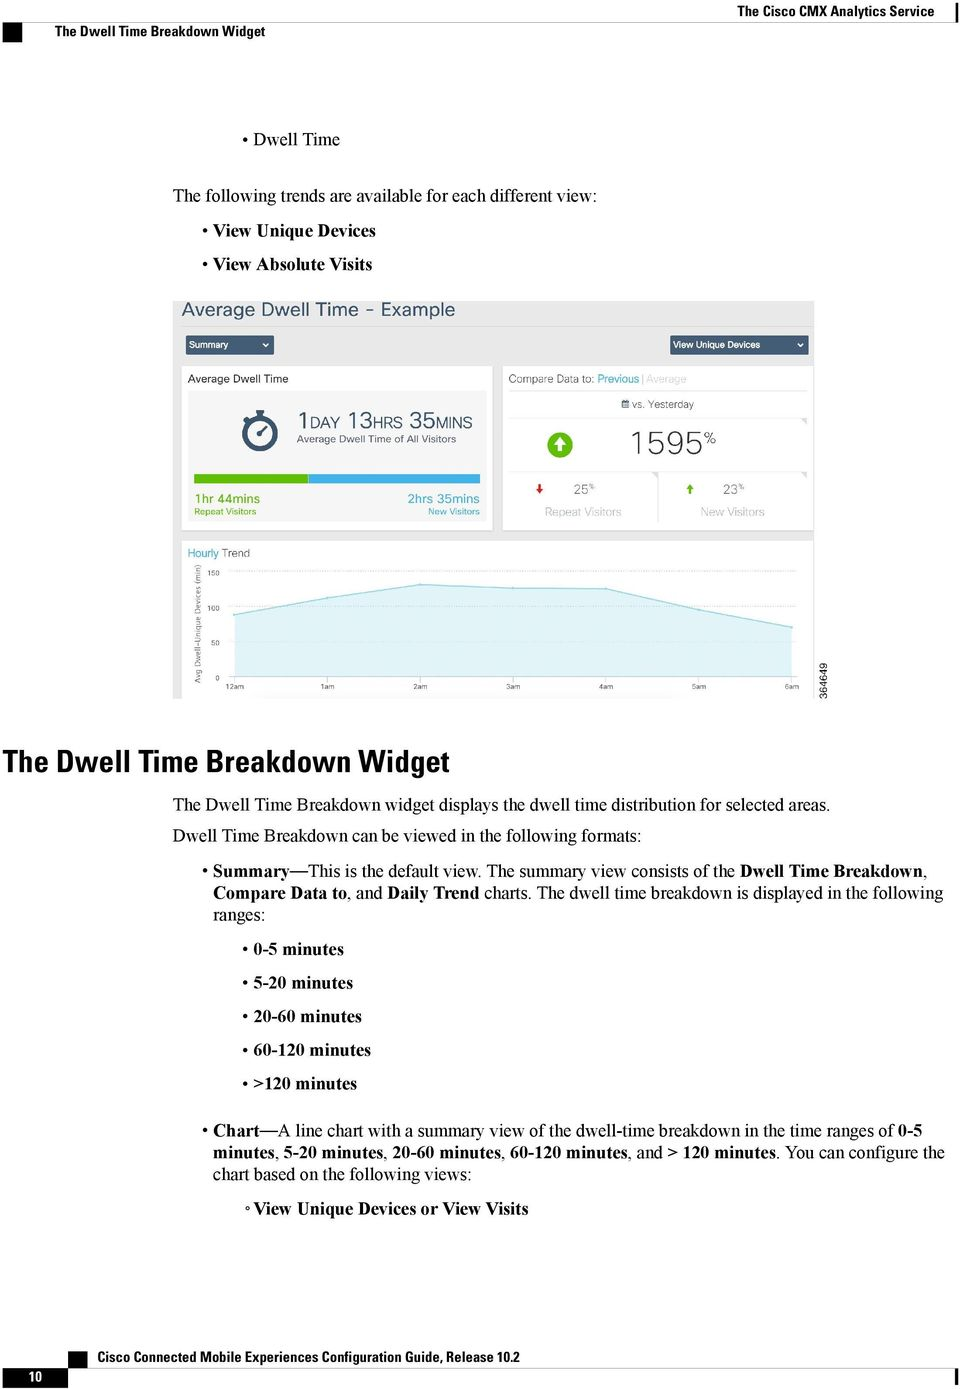 The summary view consists of the Dwell Time Breakdown, Compare Data to, and Daily Trend charts.